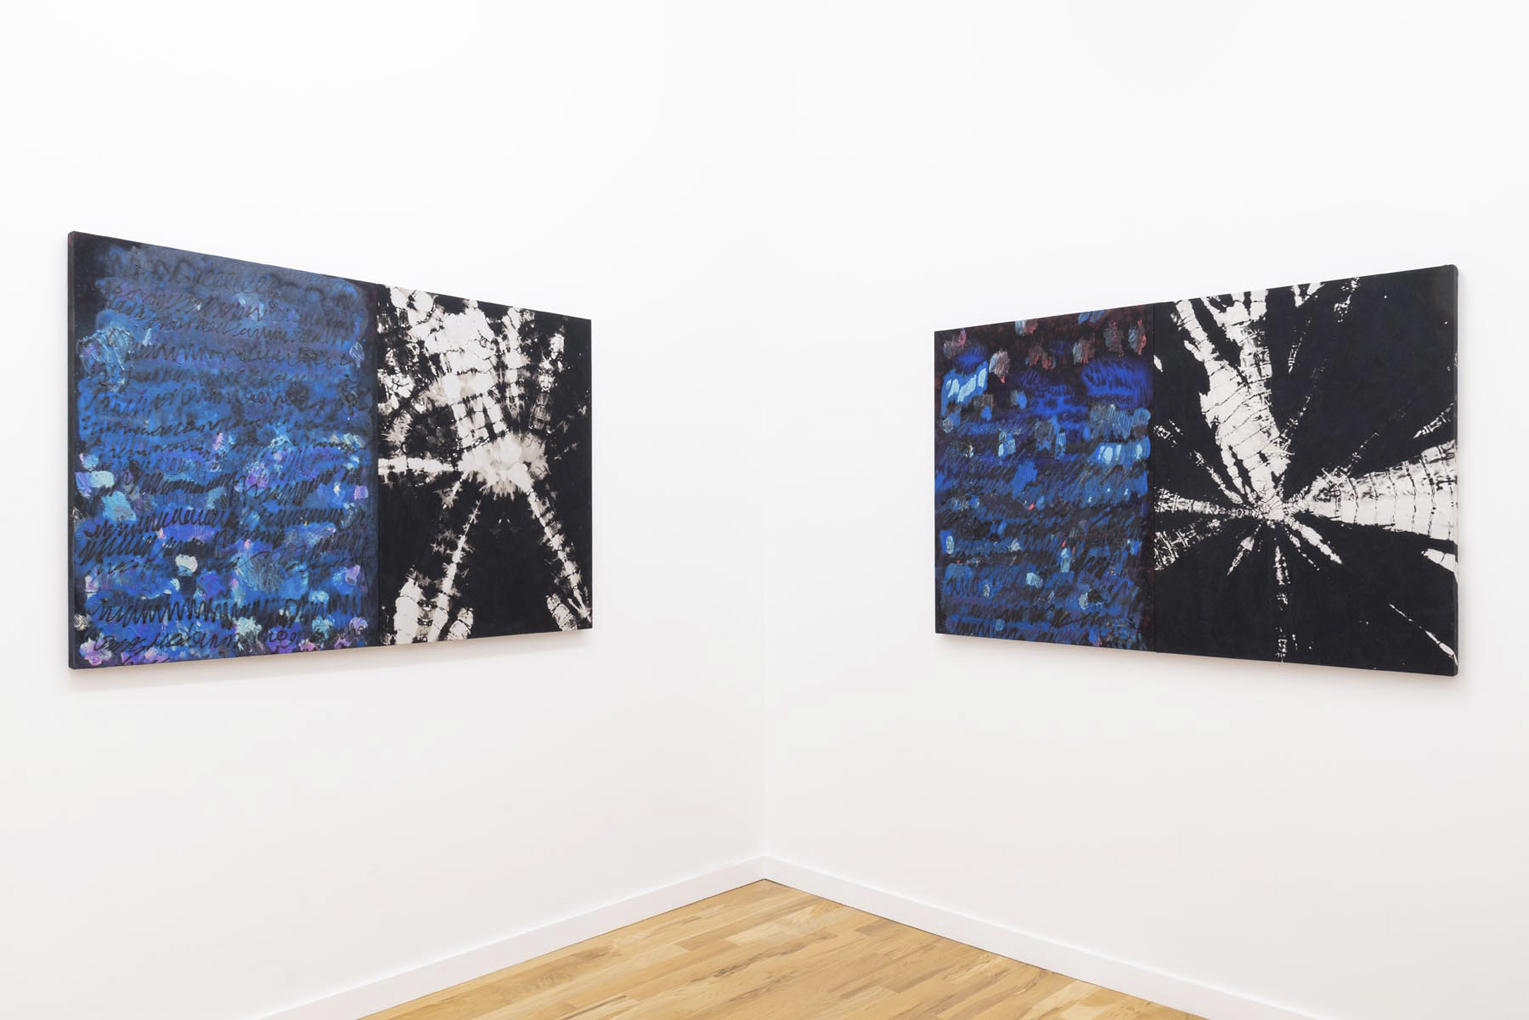 Installation view at PLHK